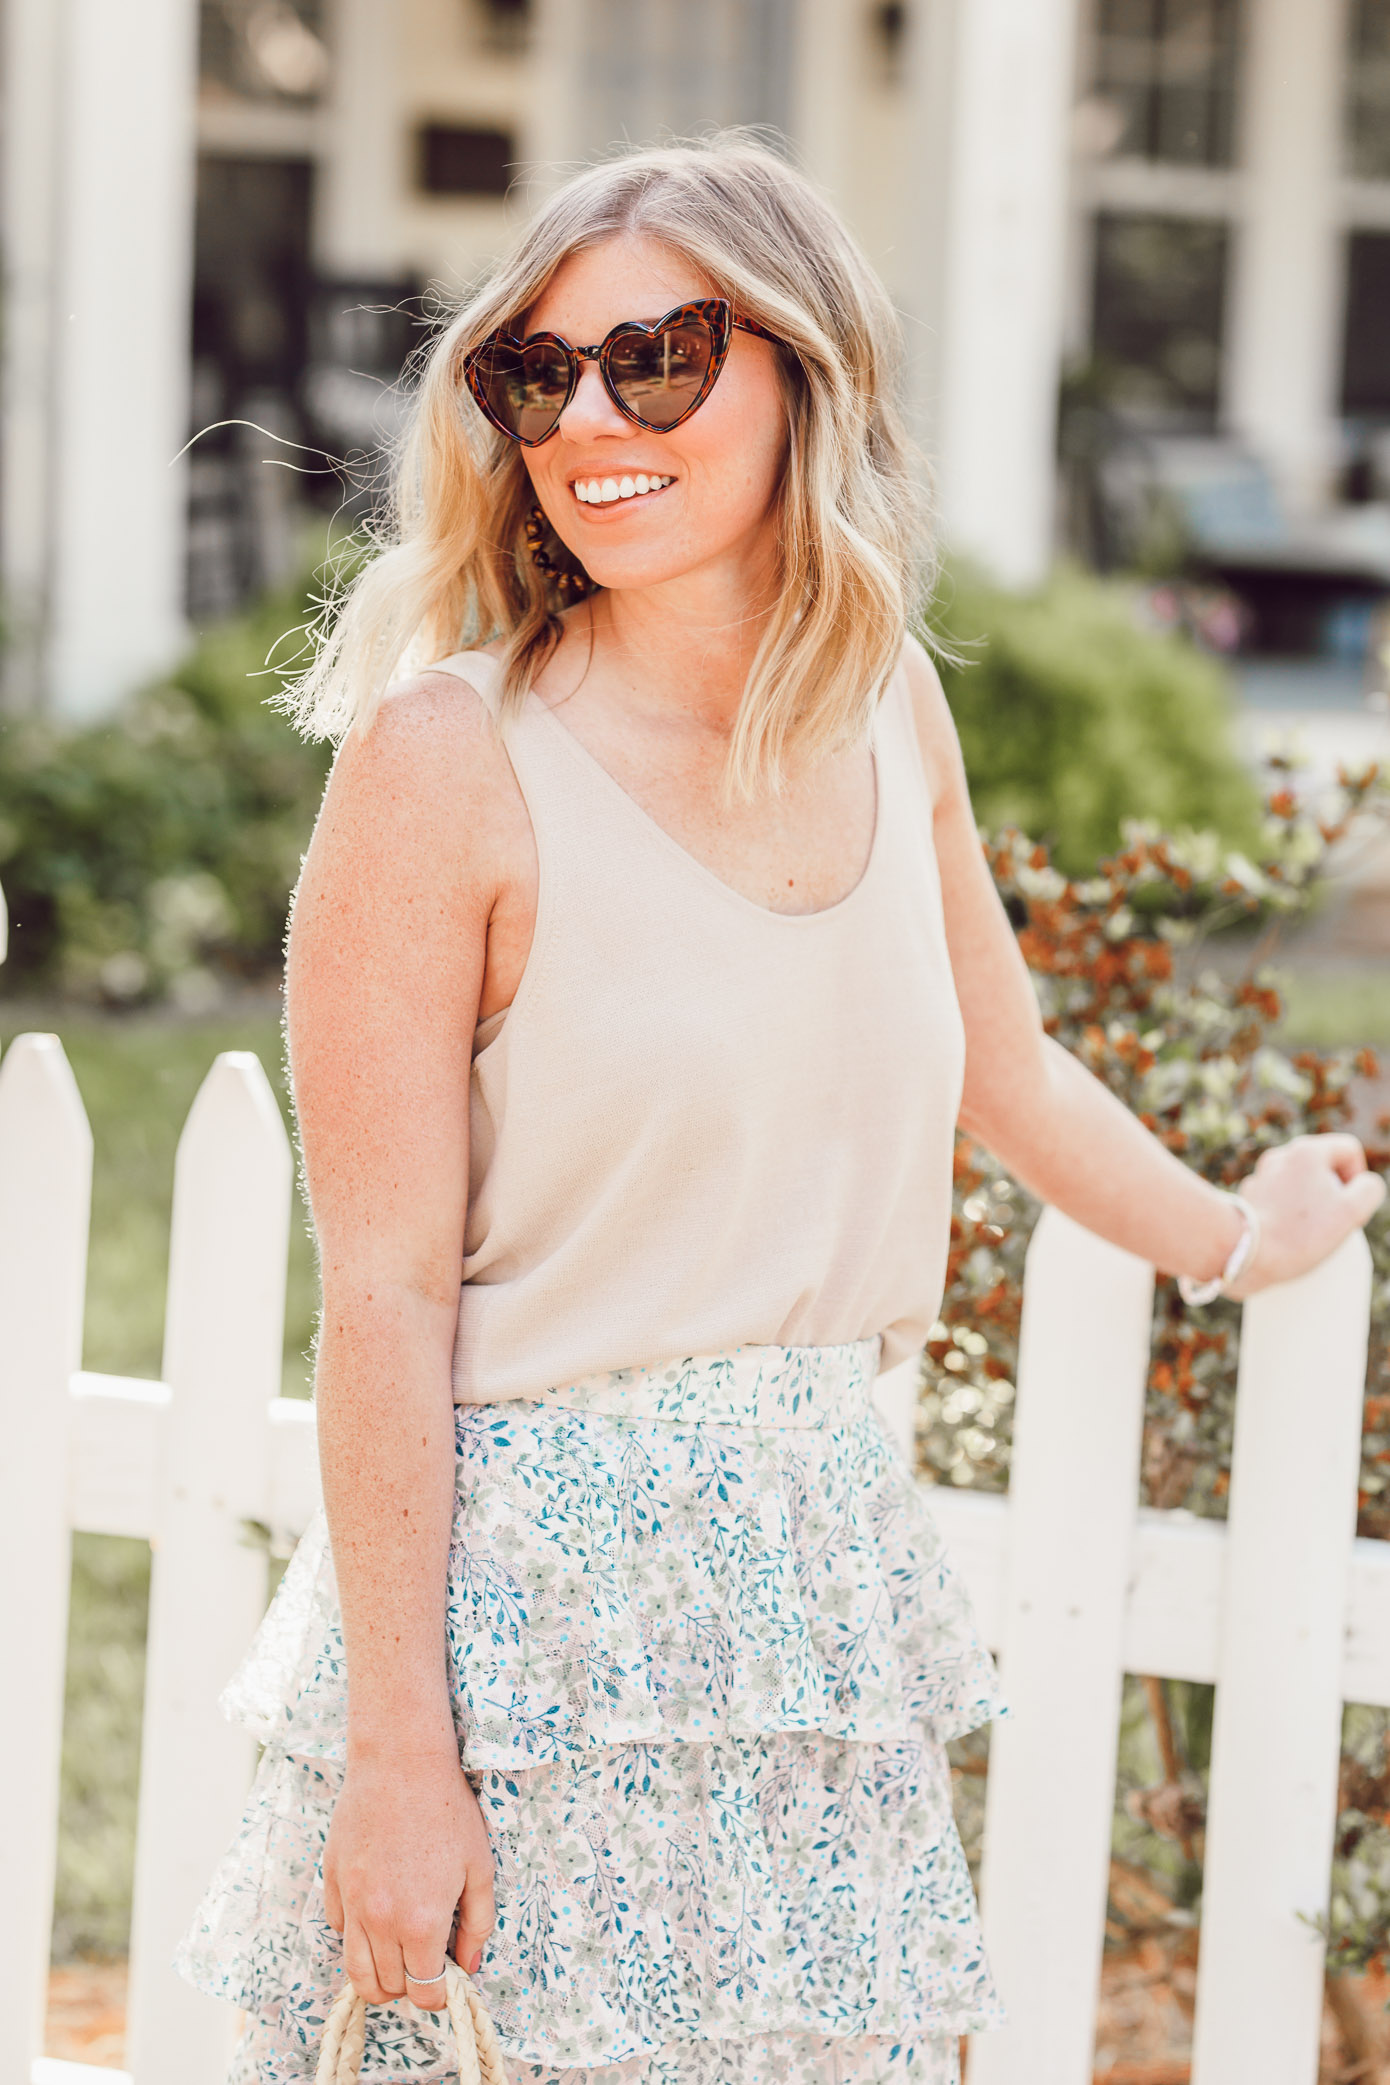 The cutest heart shaped sunglasses to complete every summer outfit | Ft. Amazon Fashion, Chicwish, Nordstrom | Louella Reese